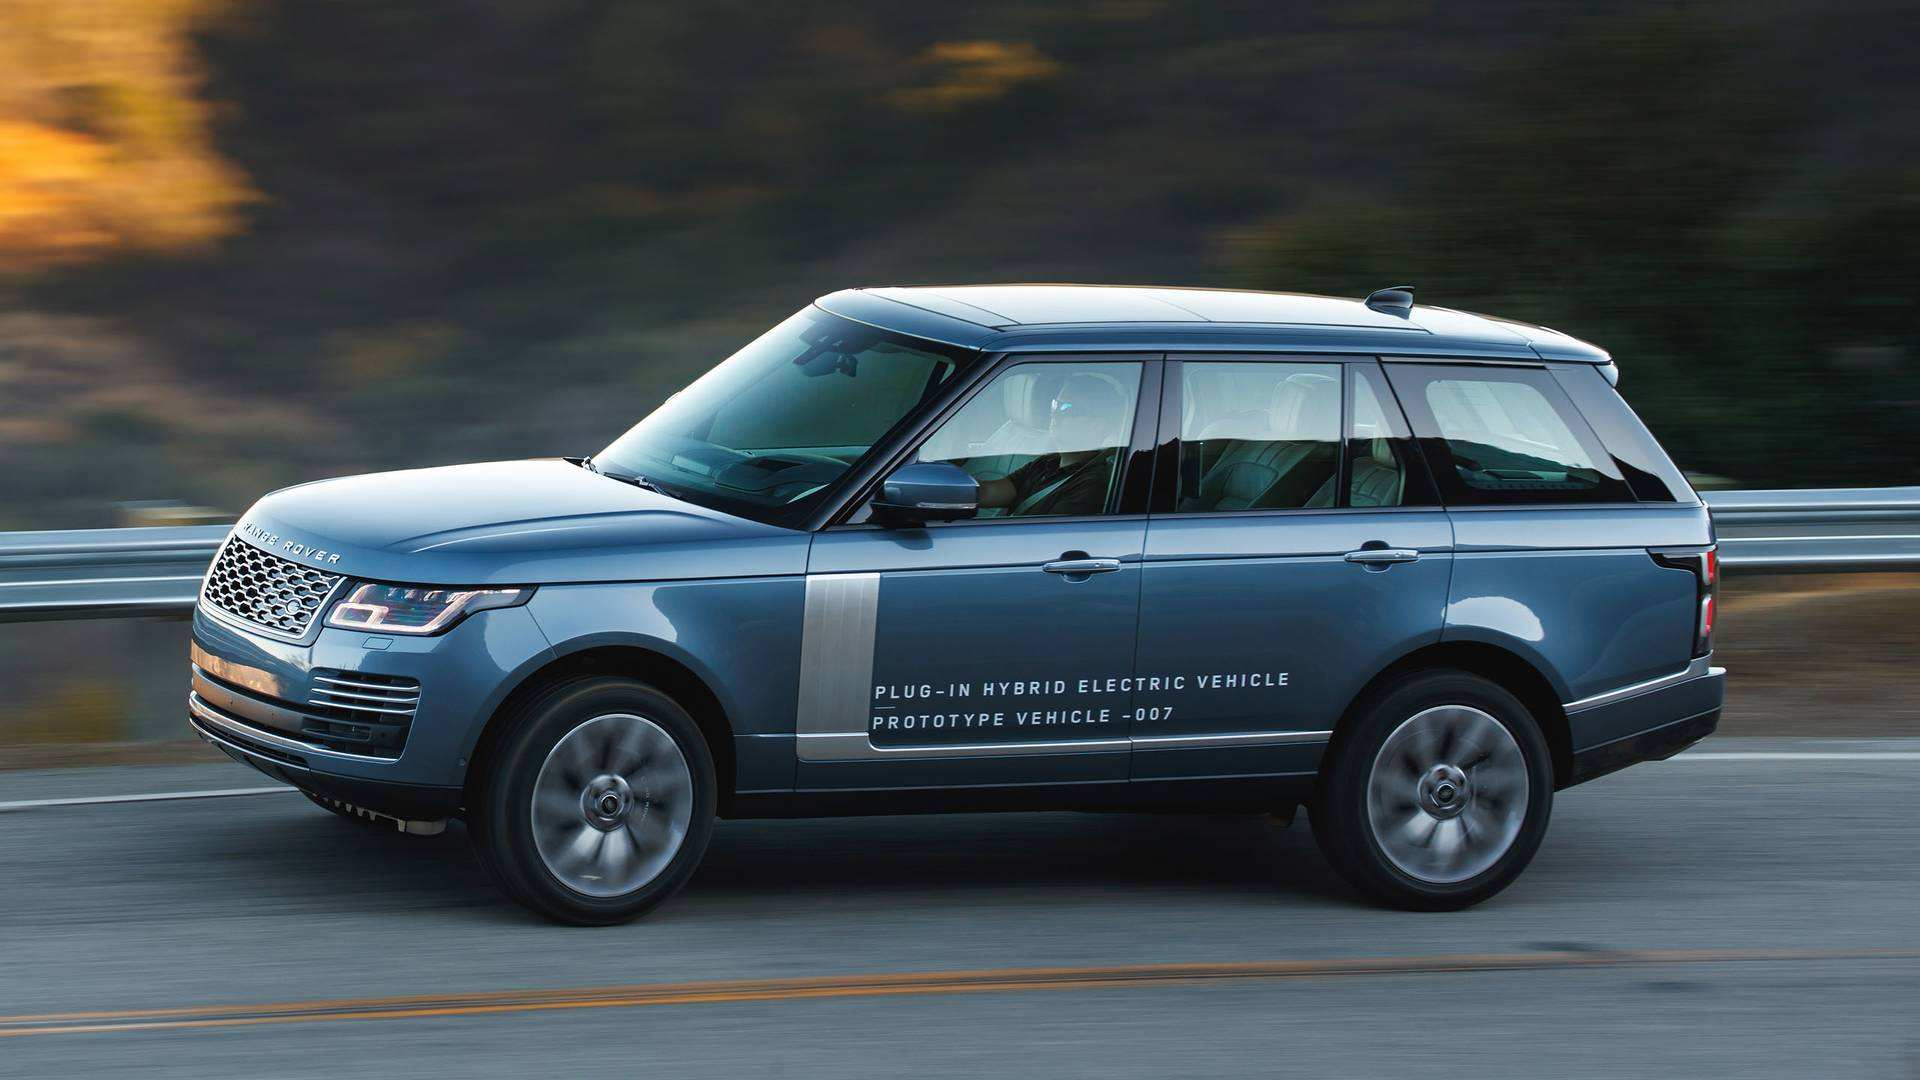 82 Best Review New Land Rover Range Rover 2019 Photos by New Land Rover Range Rover 2019